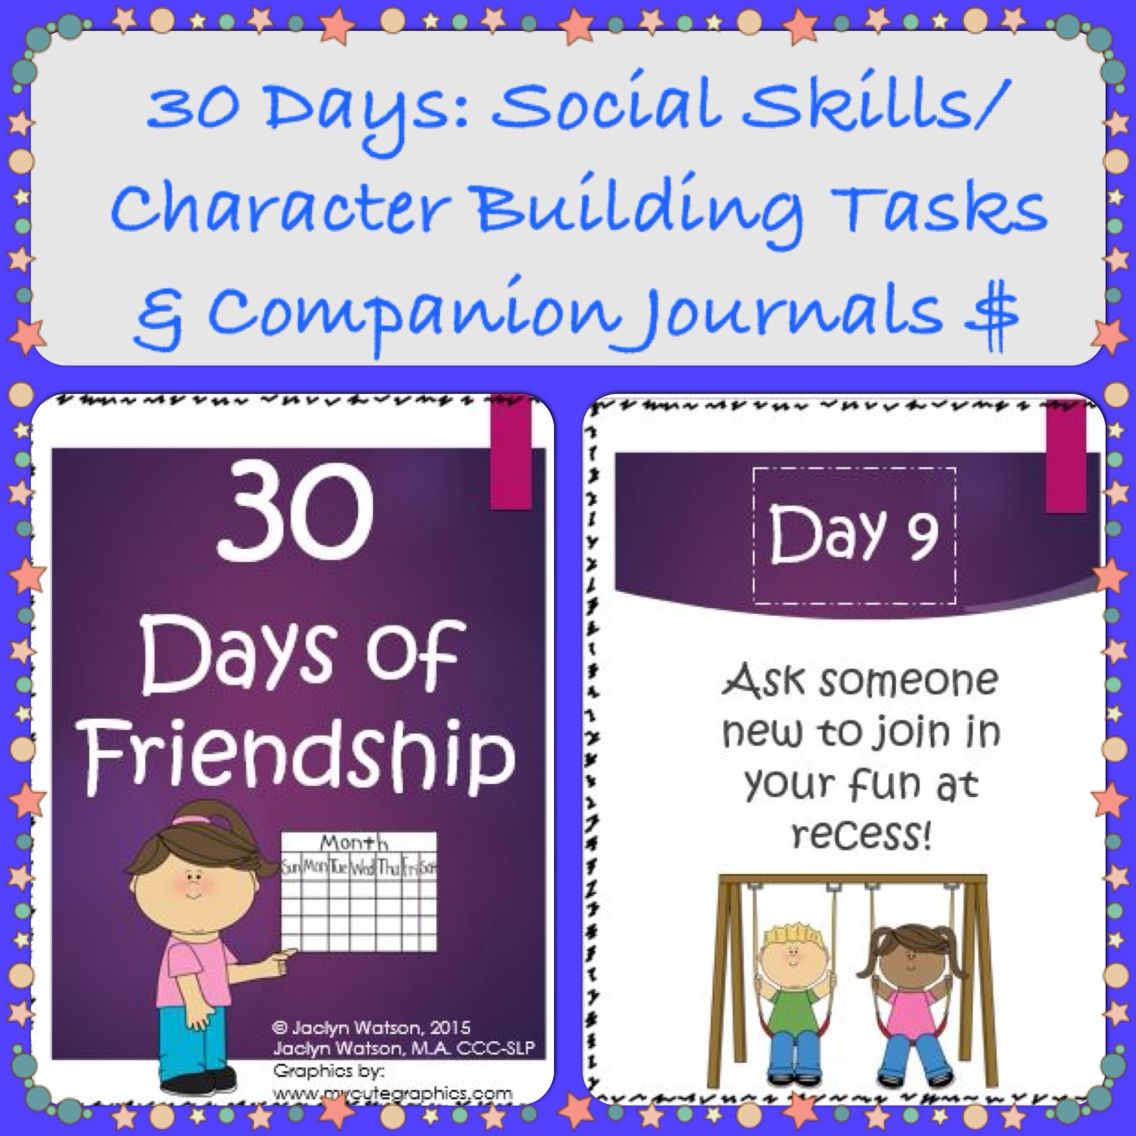 30 Days Of Friendship Social Skills Character Building